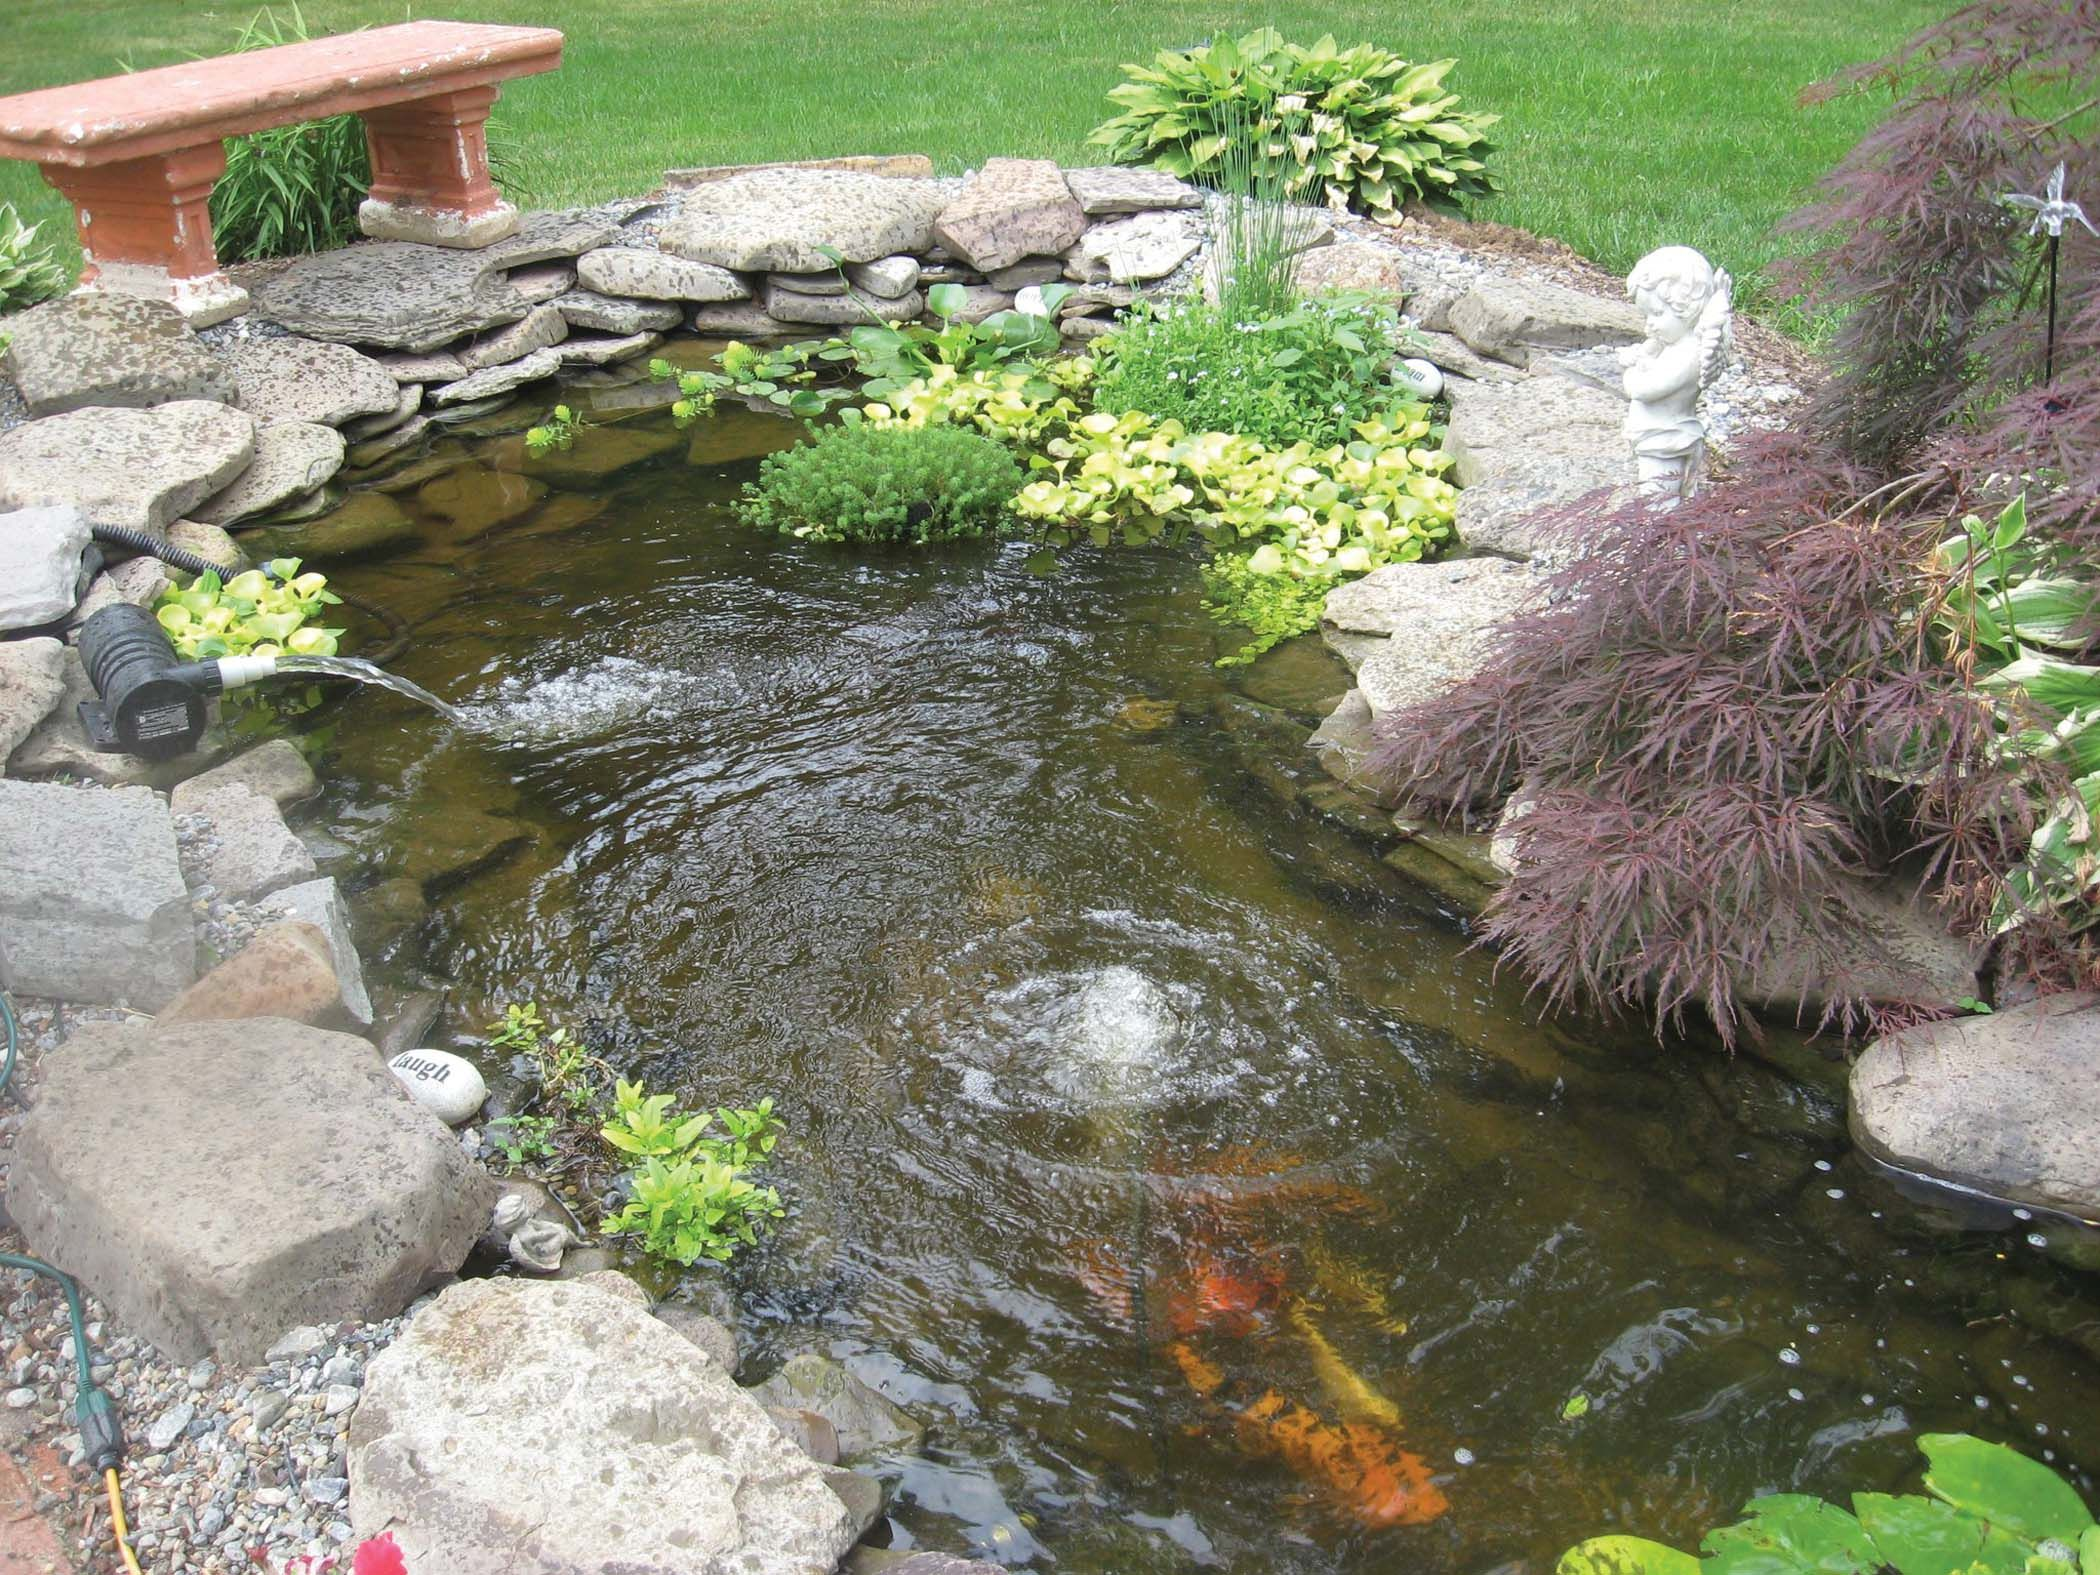 koi pond kits koi fish pond fish ponds pond maintenance backyard ponds